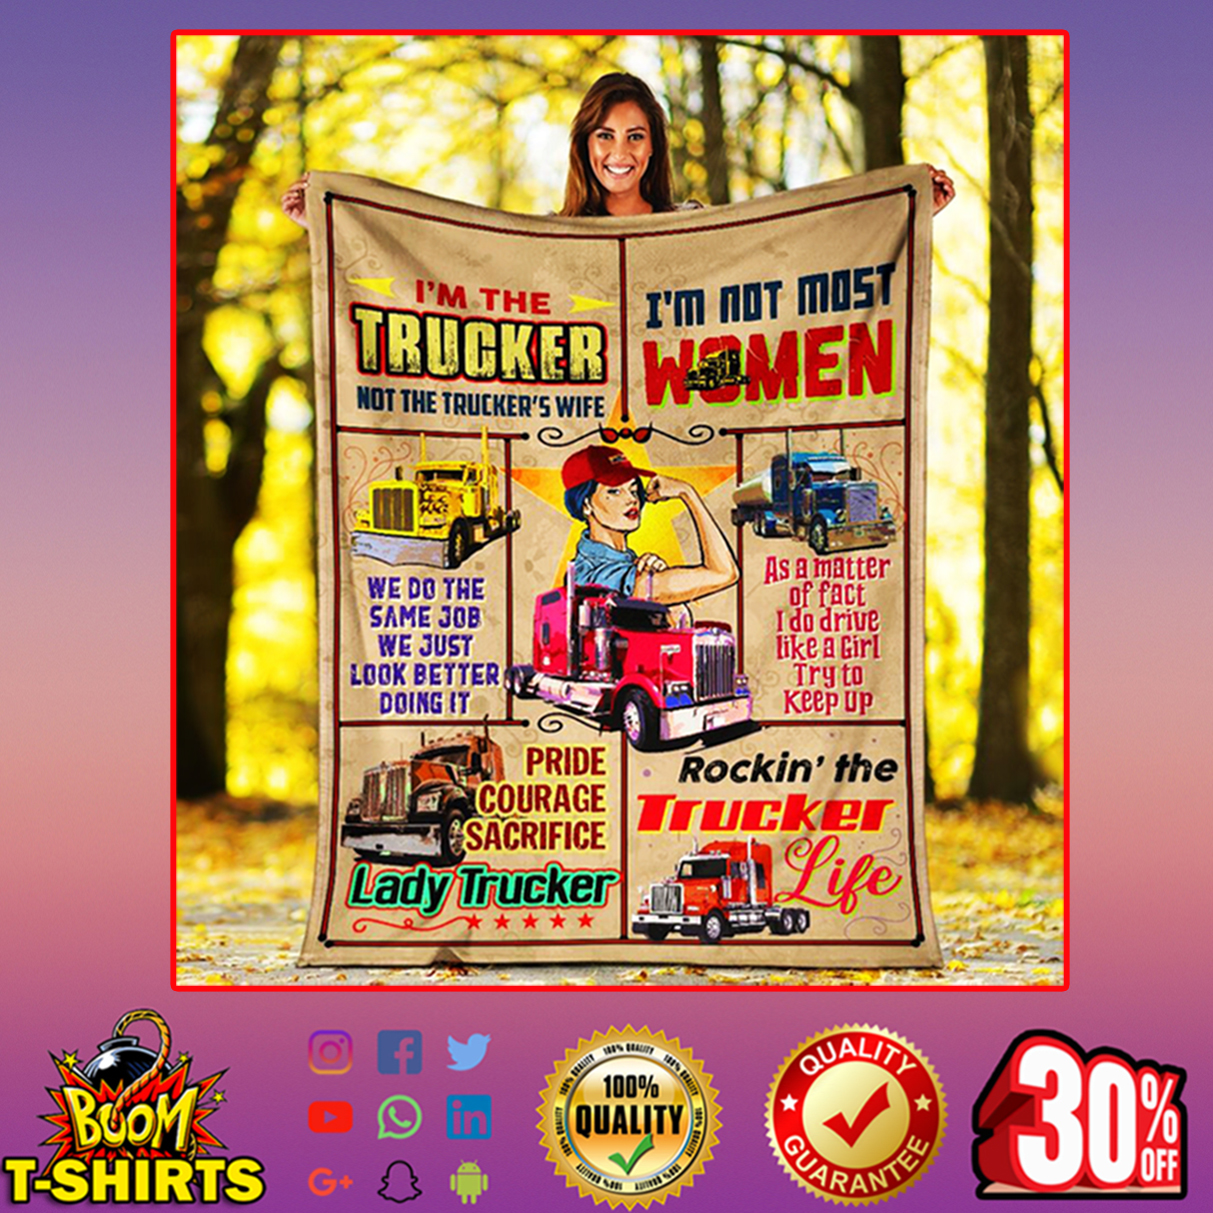 I'm the trucker not the trucker's wife lady trucker quilt blanket - picture 2